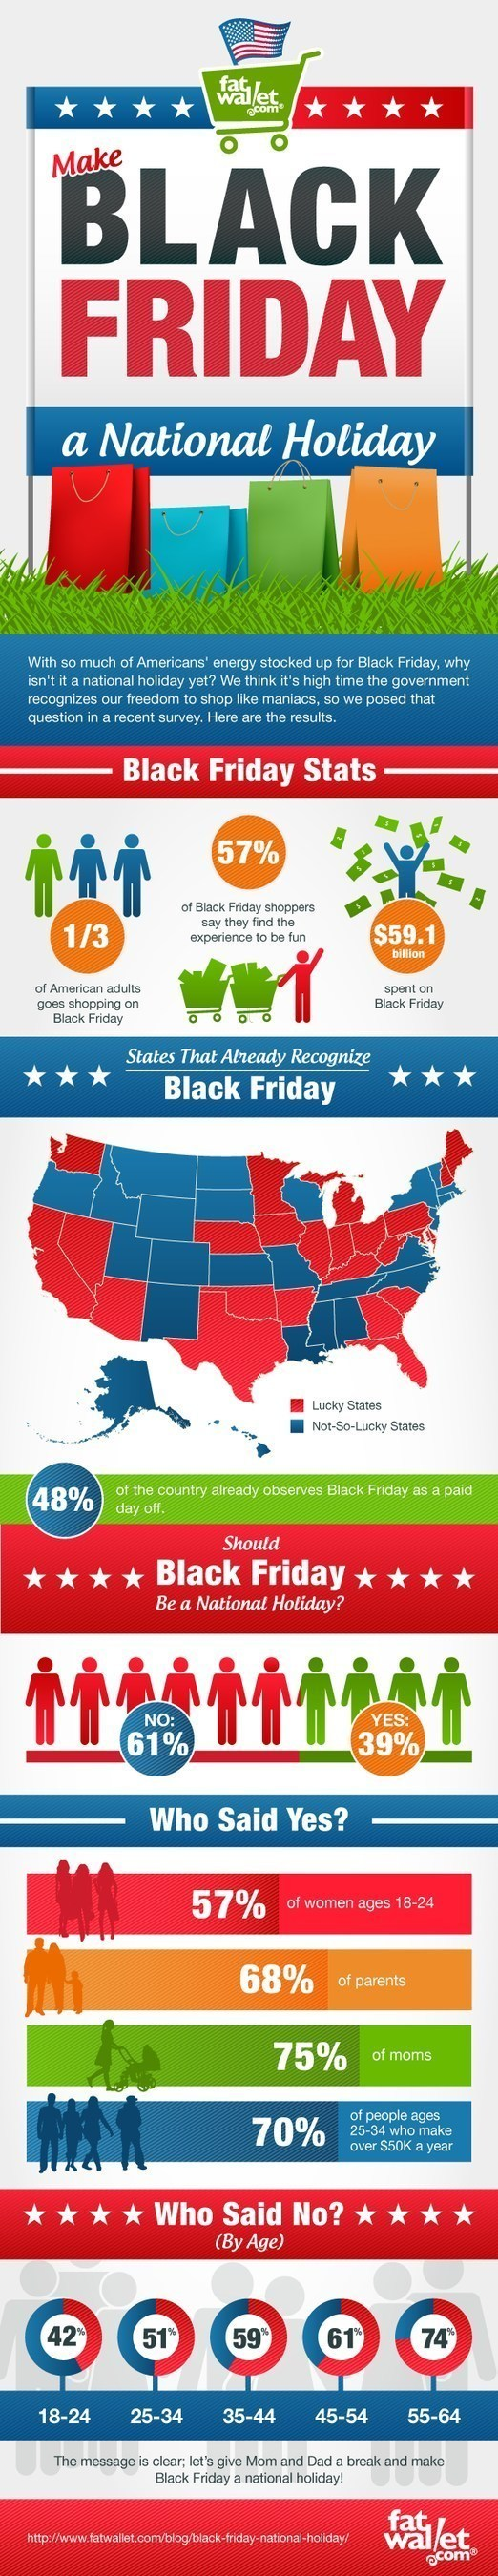 Moms and Dads Vote to Make Black Friday a National Holiday